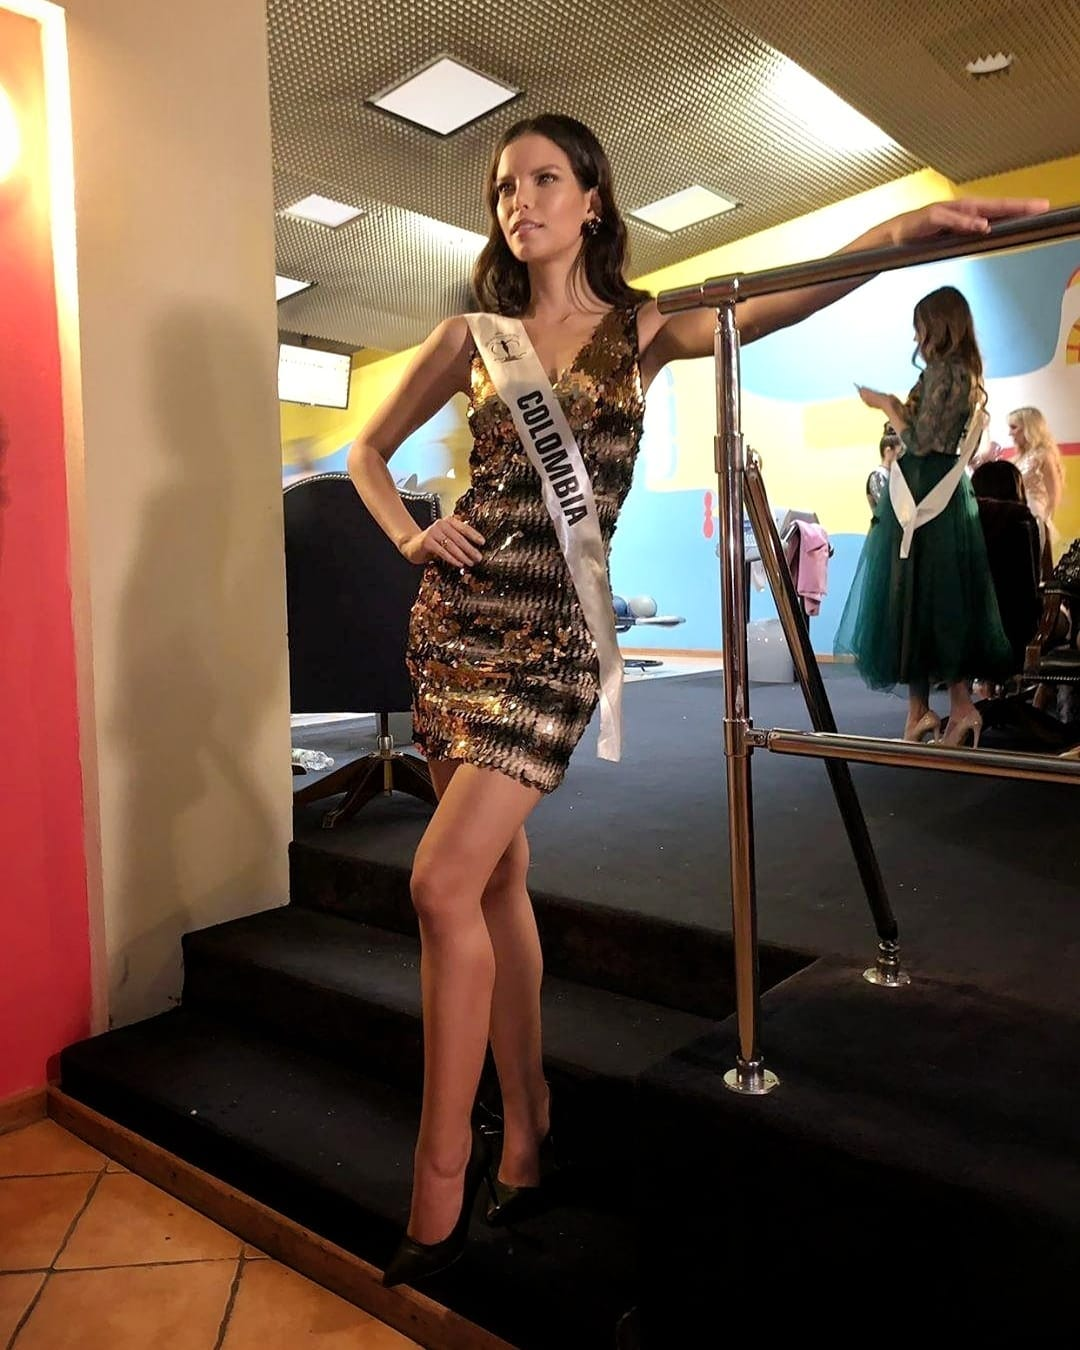 yaiselle tous, miss supranational colombia 2019. - Página 6 74682912